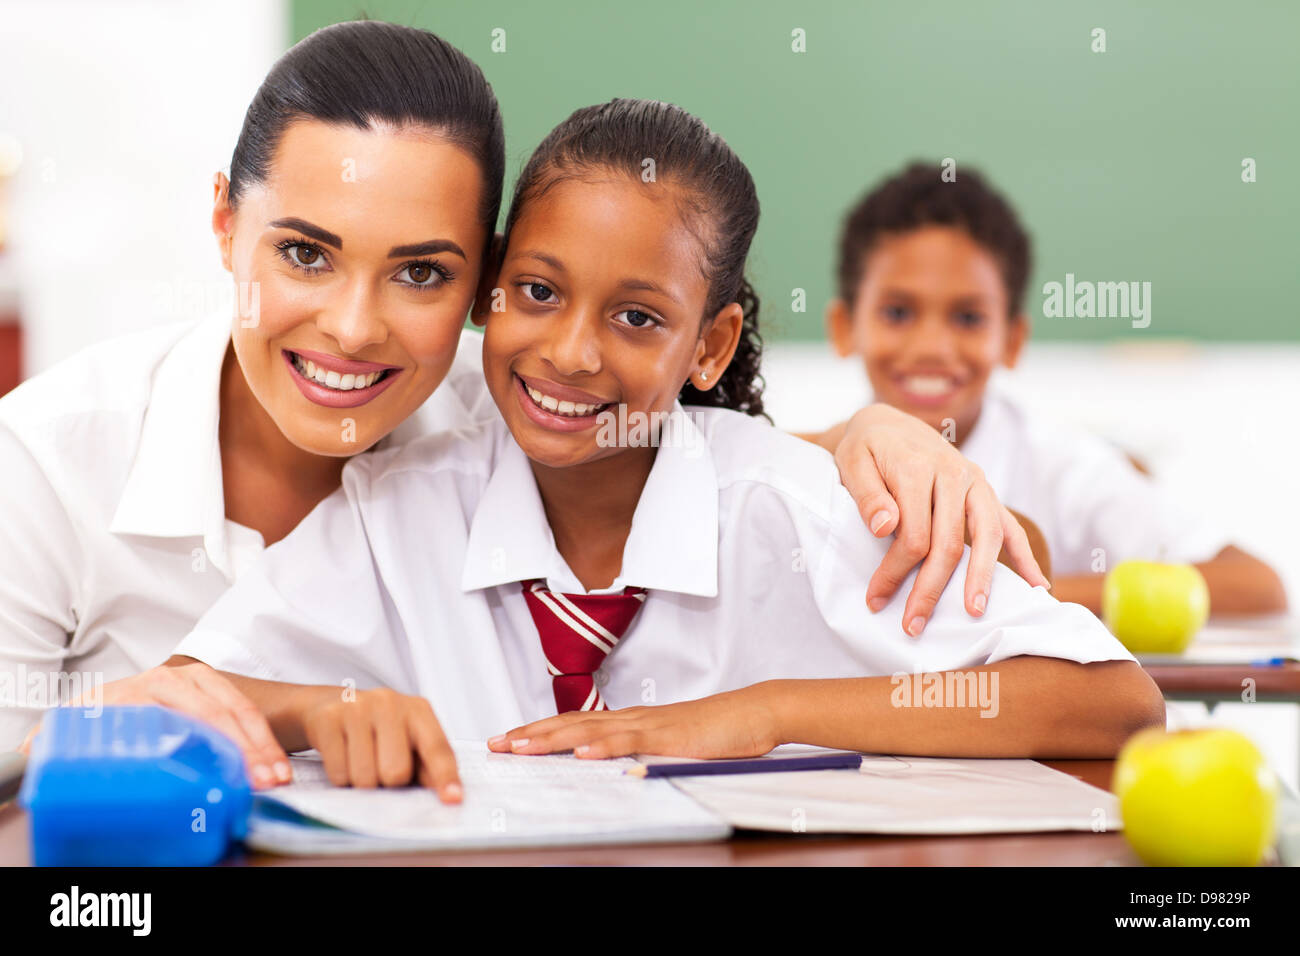 pretty elementary school educator and students in classroom - Stock Image